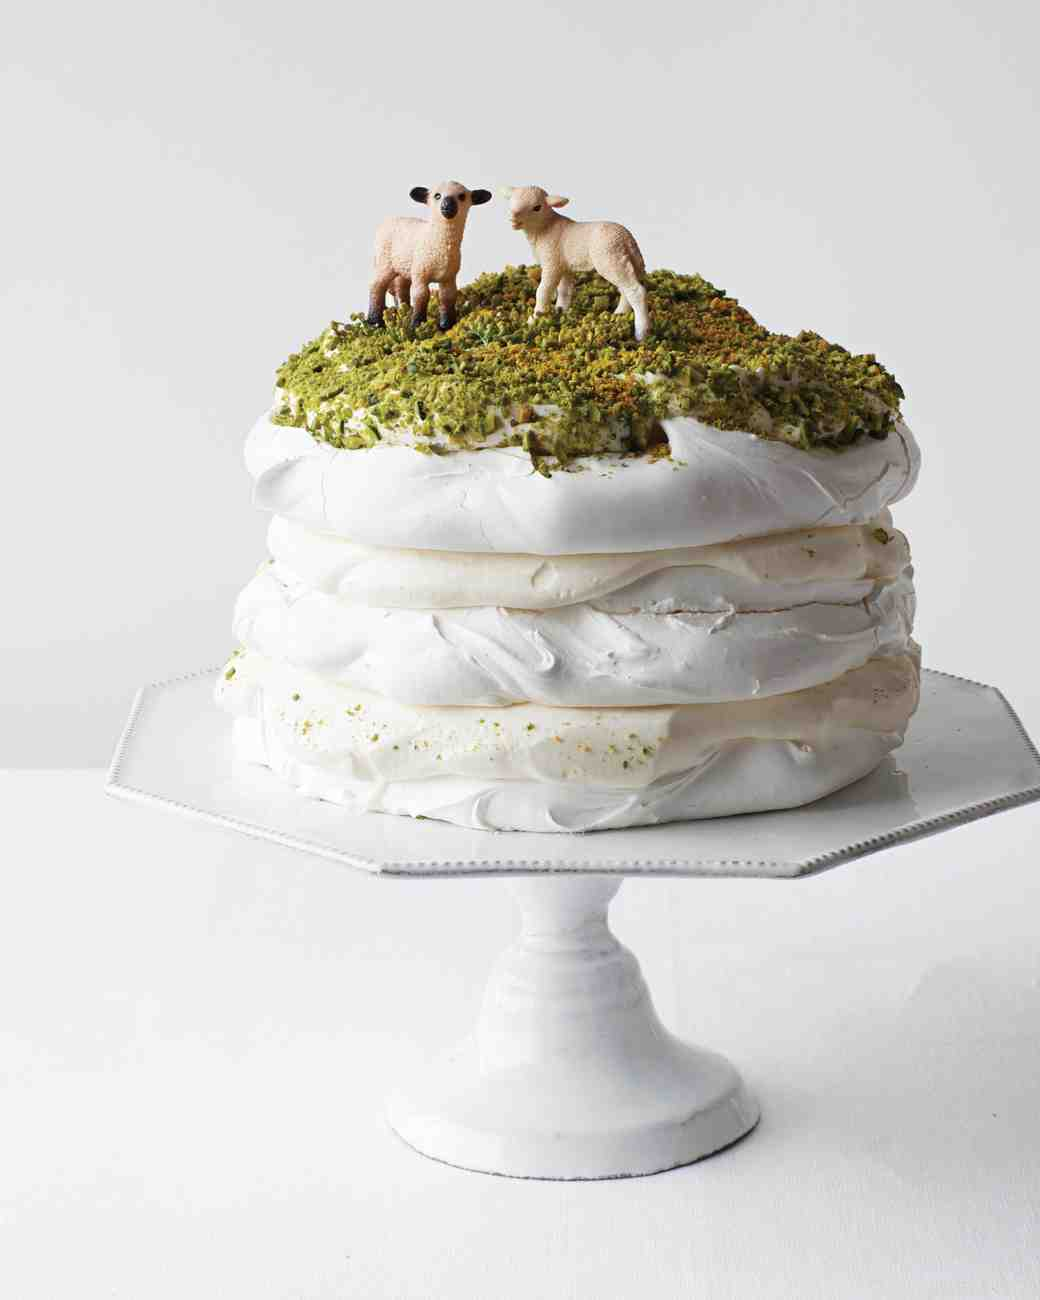 naked-cakes-pavlova-sheep-toppers-002-d112920.jpg